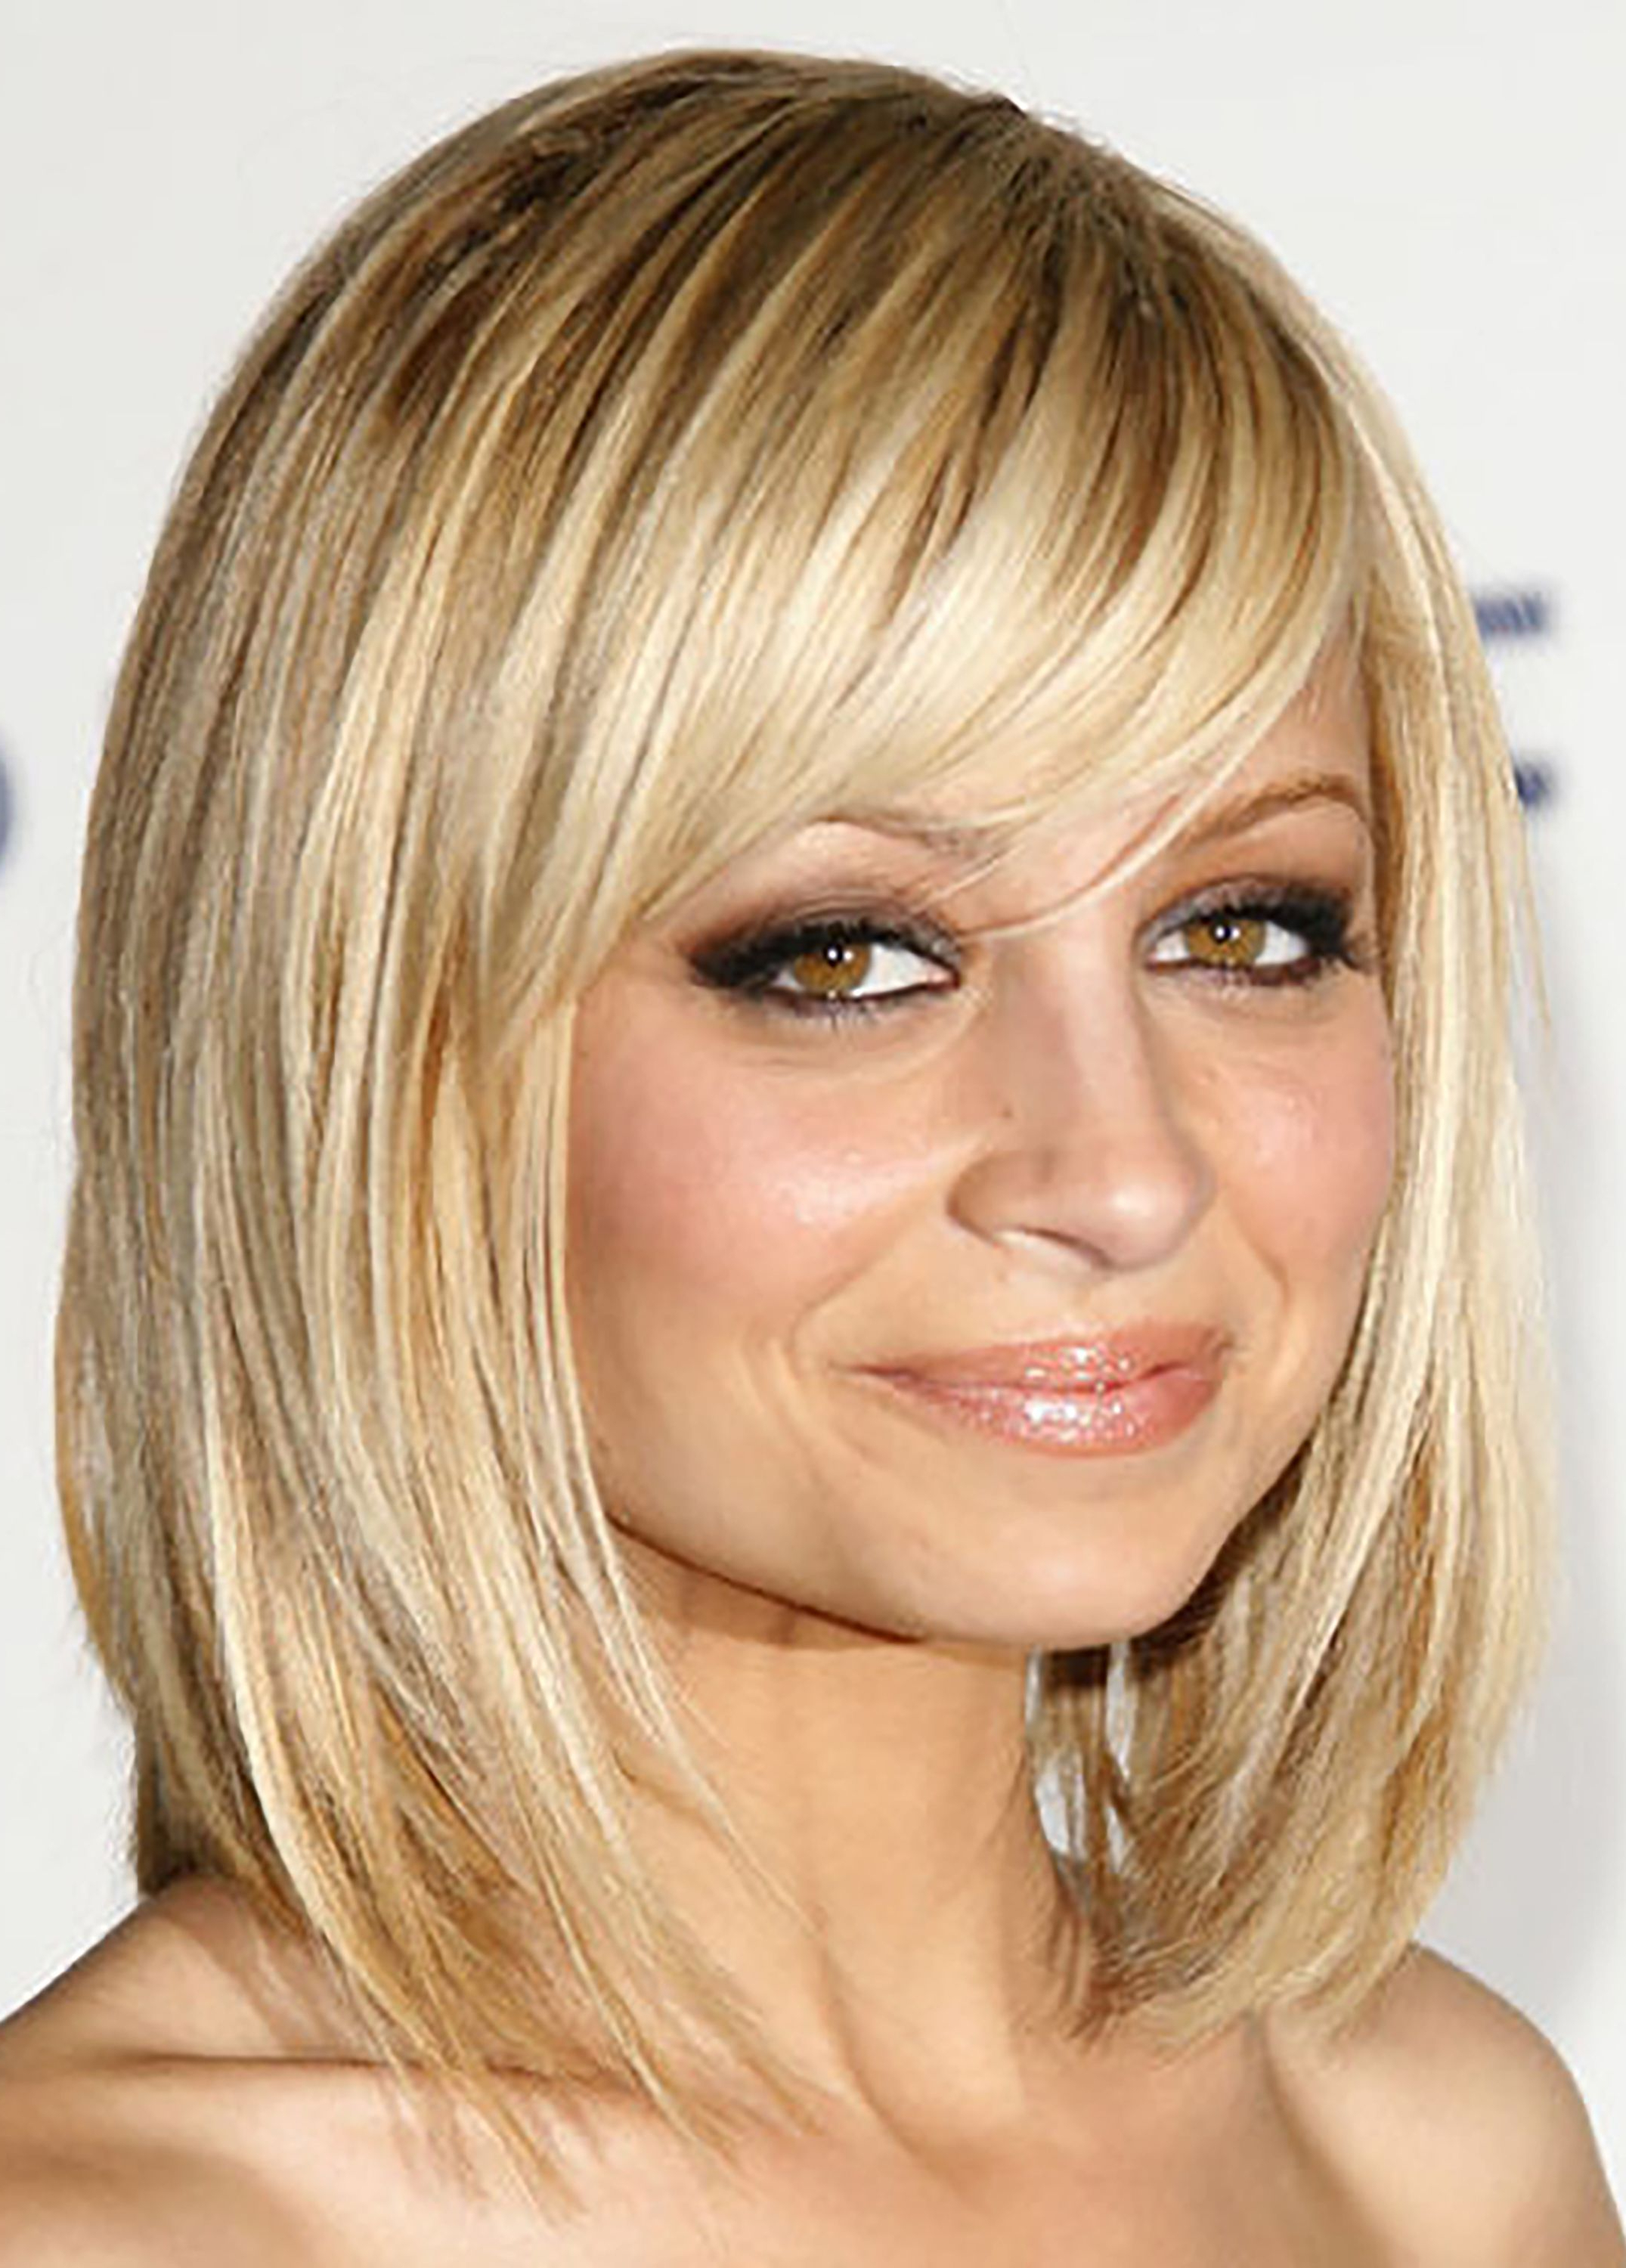 Well Known Layered Haircuts With Cropped Locks On The Crown With 35 Cute Short Haircuts For Women 2019 – Easy Short Female Hairstyle (View 20 of 20)